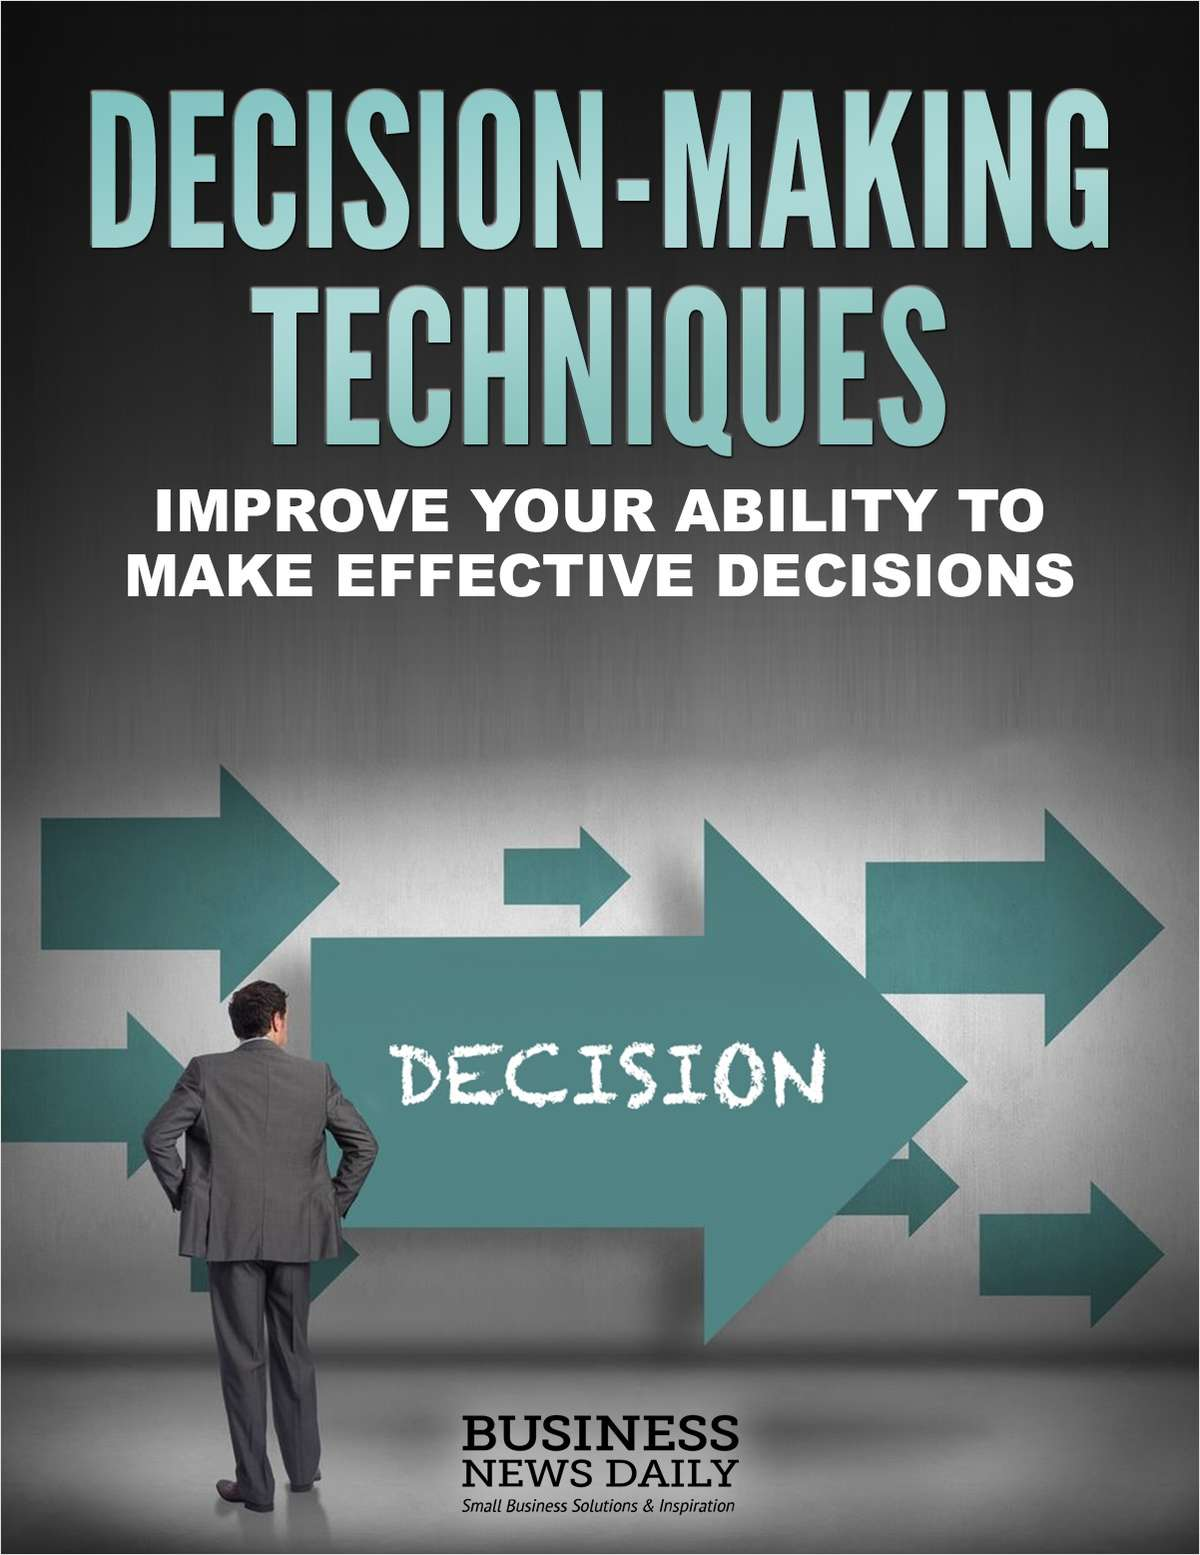 Decision-Making Techniques - Improve Your Ability to Make Effective Decisions